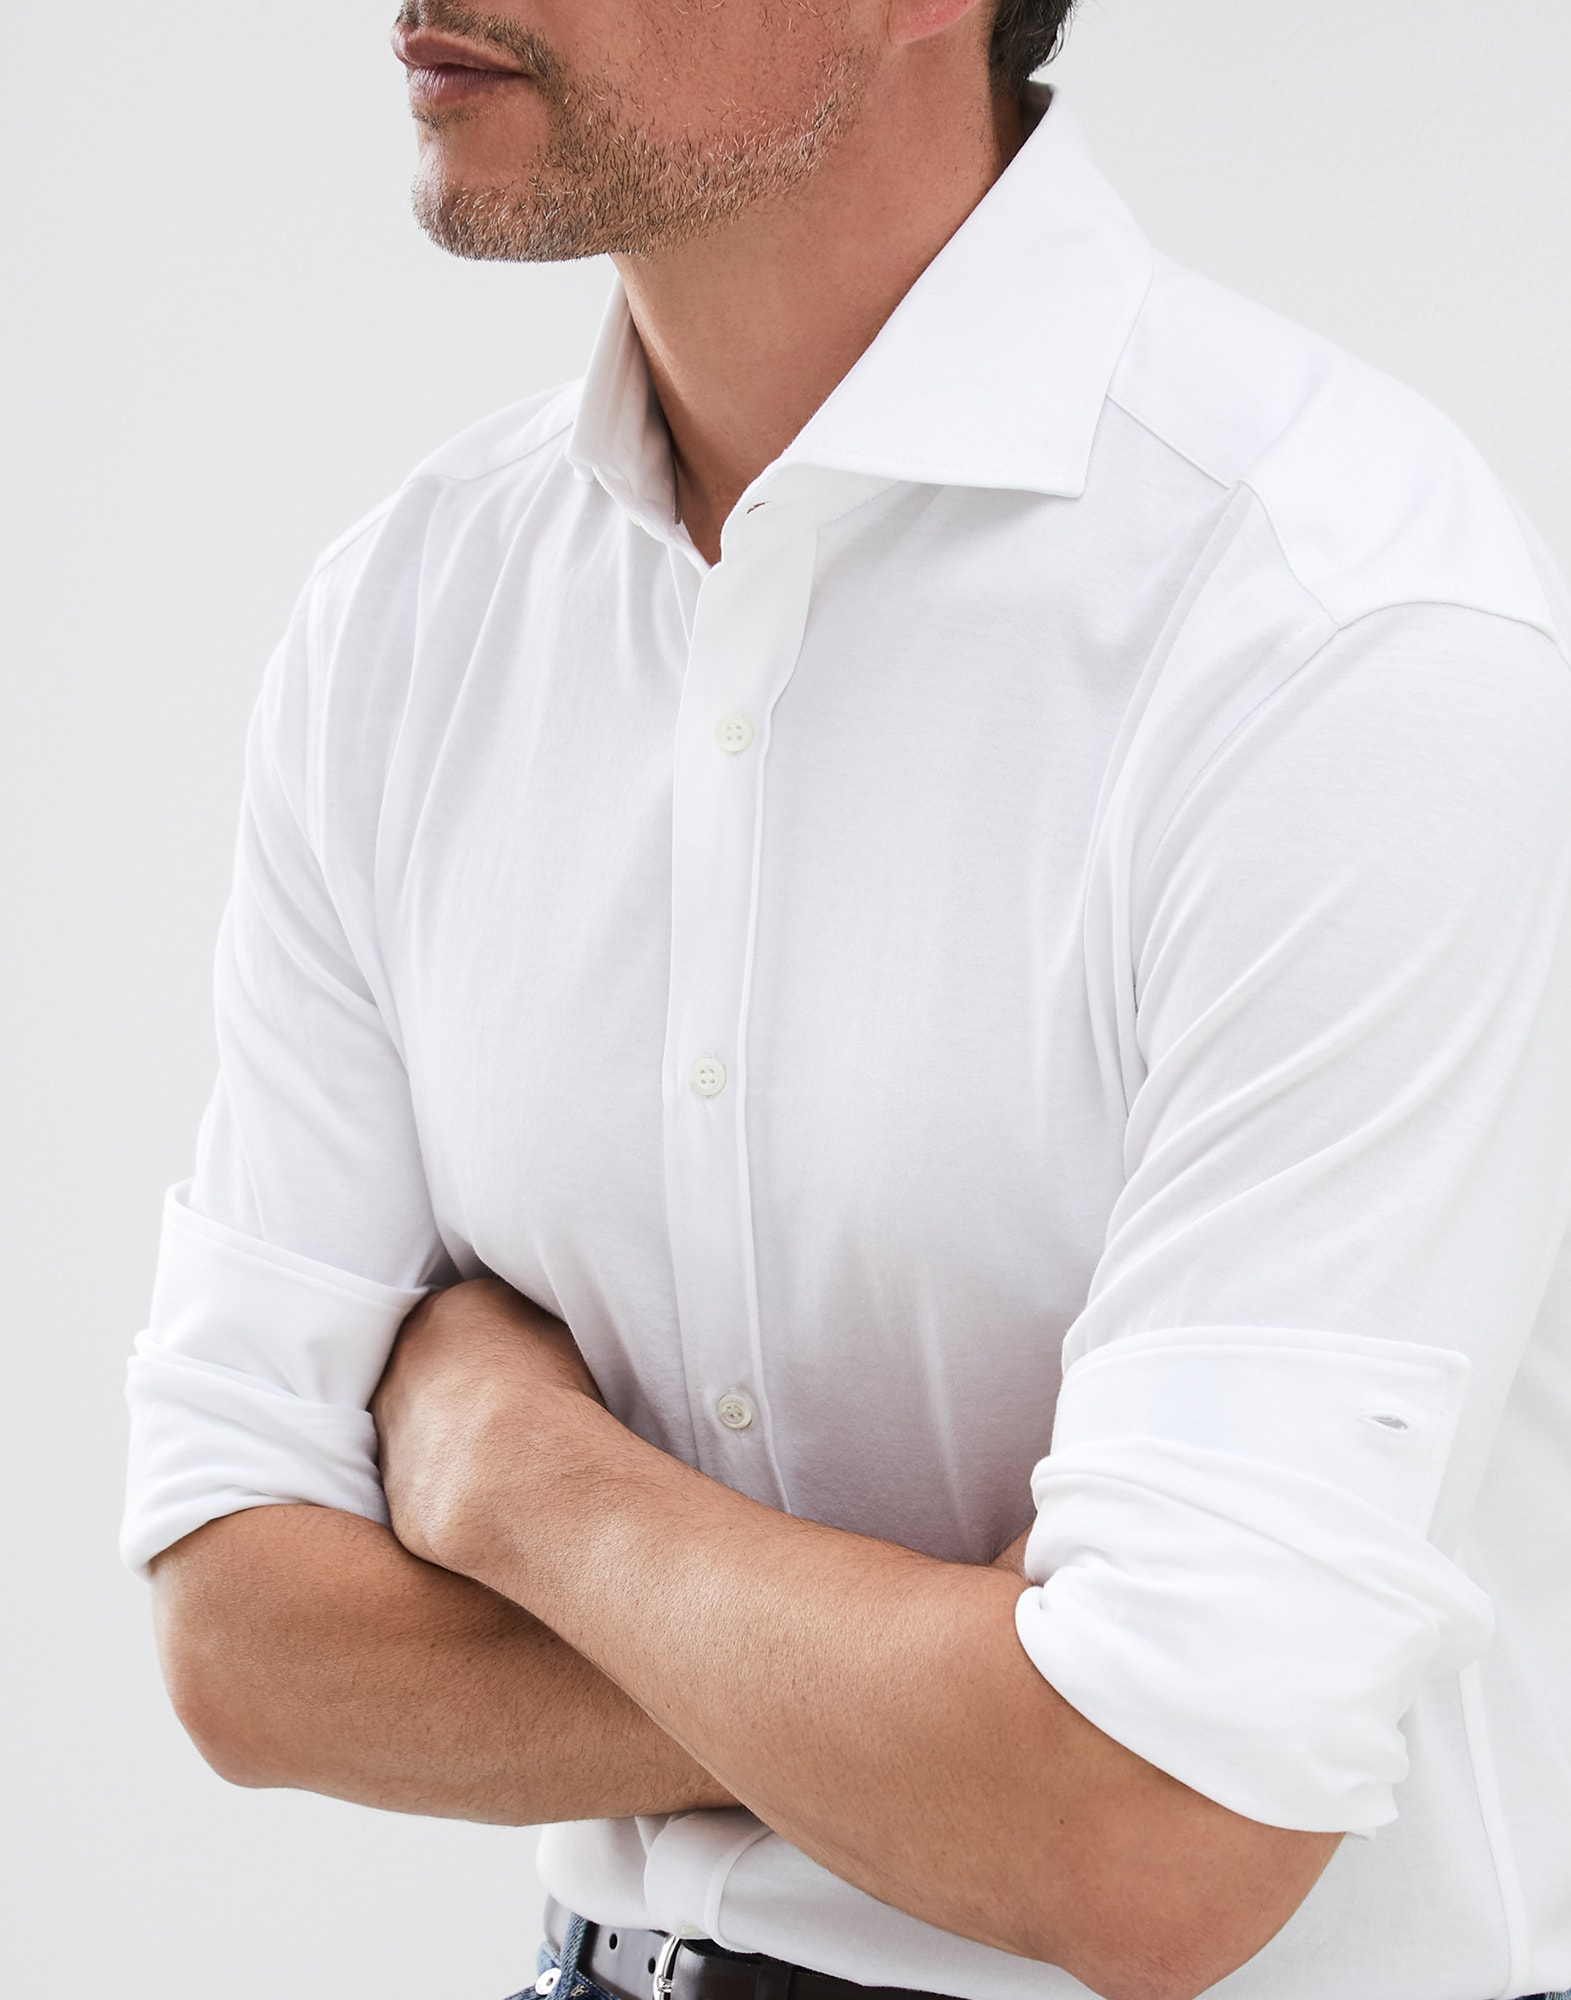 French Collar Shirt - Detail view